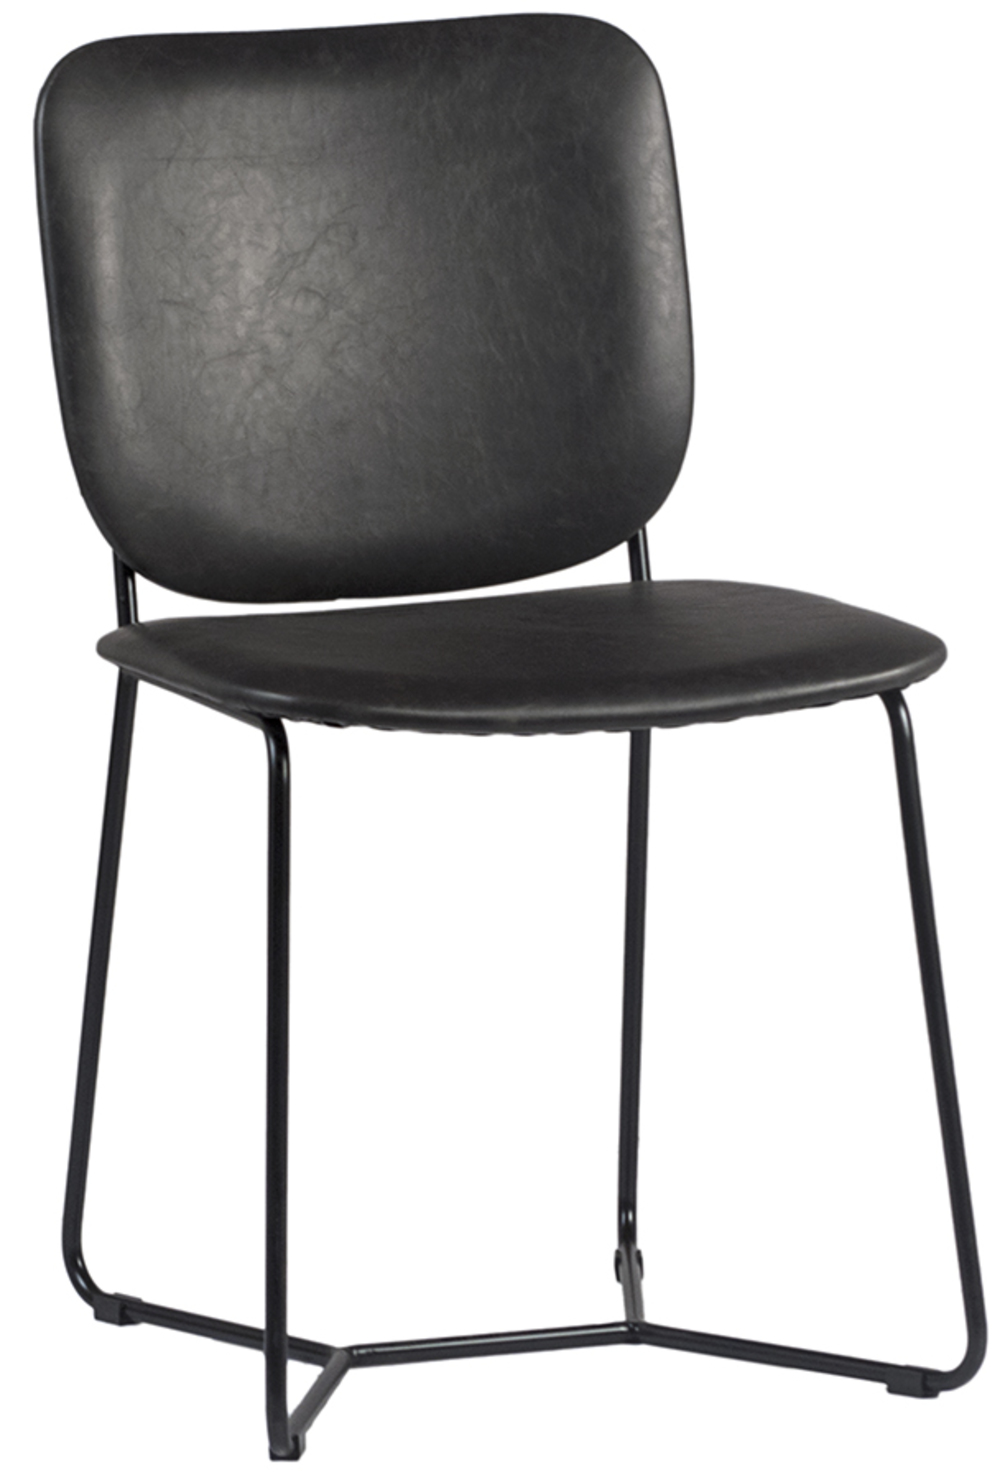 Dovetail Furniture - Lublin Dining Chair